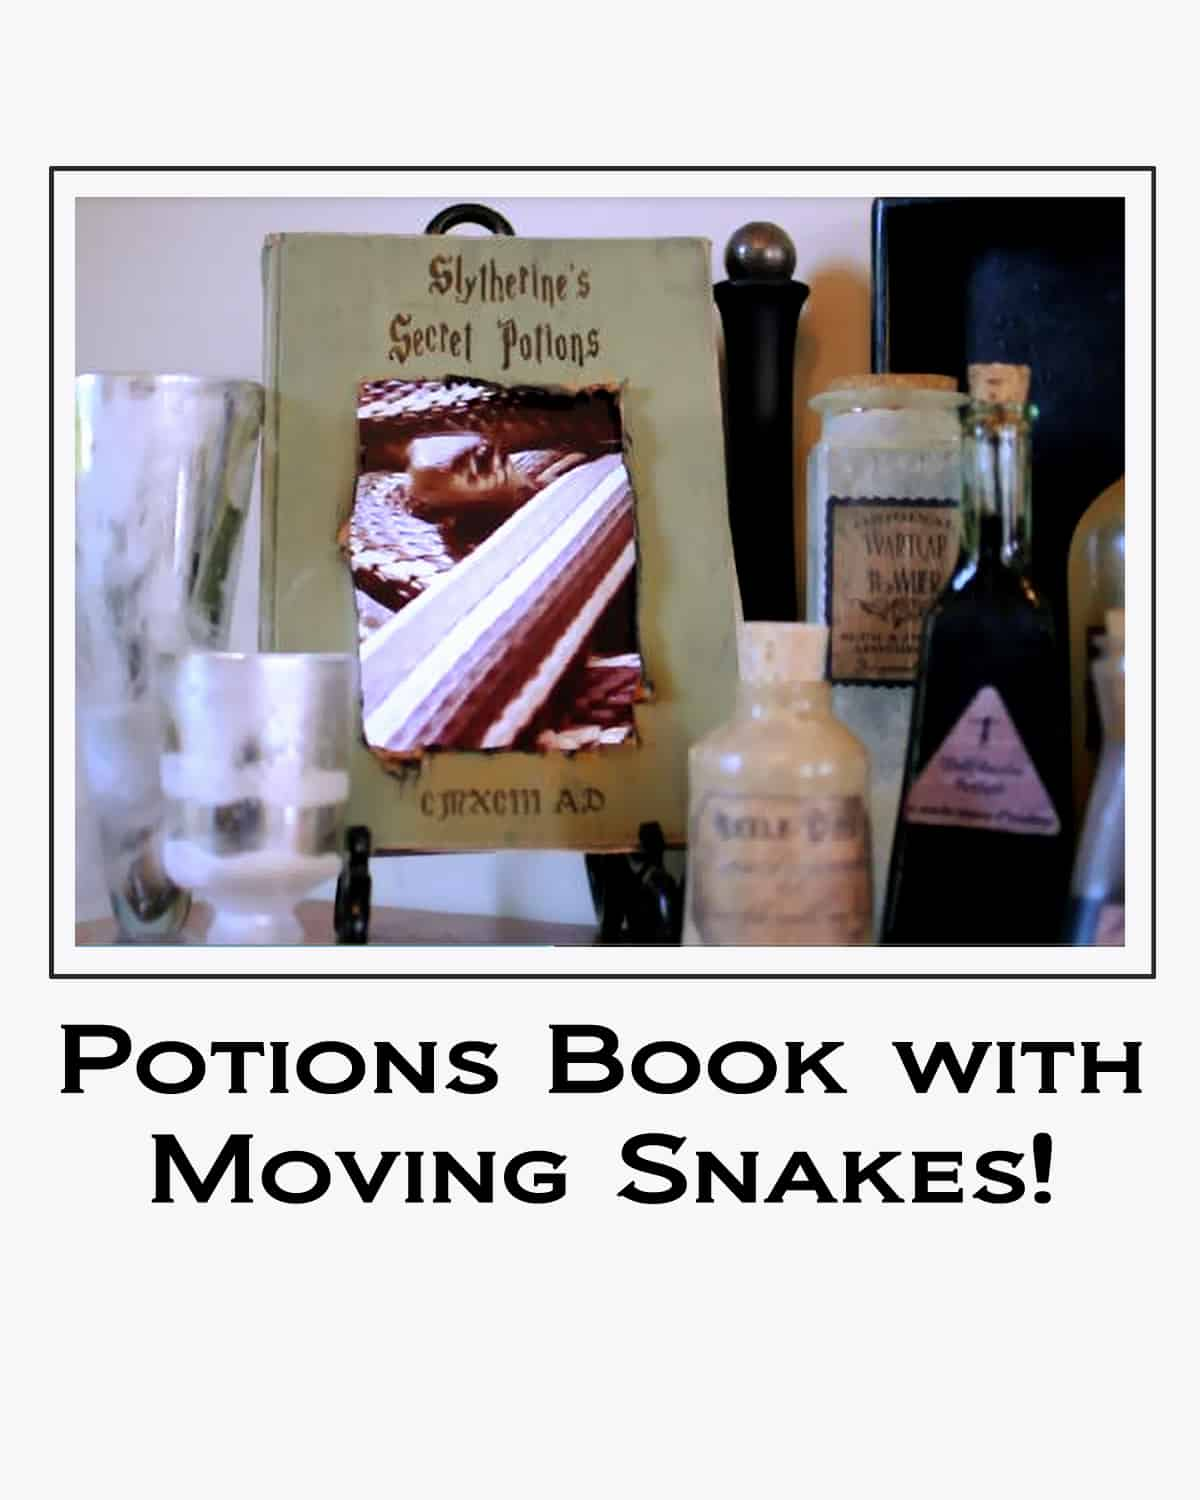 Potions Book with Moving Snakes button